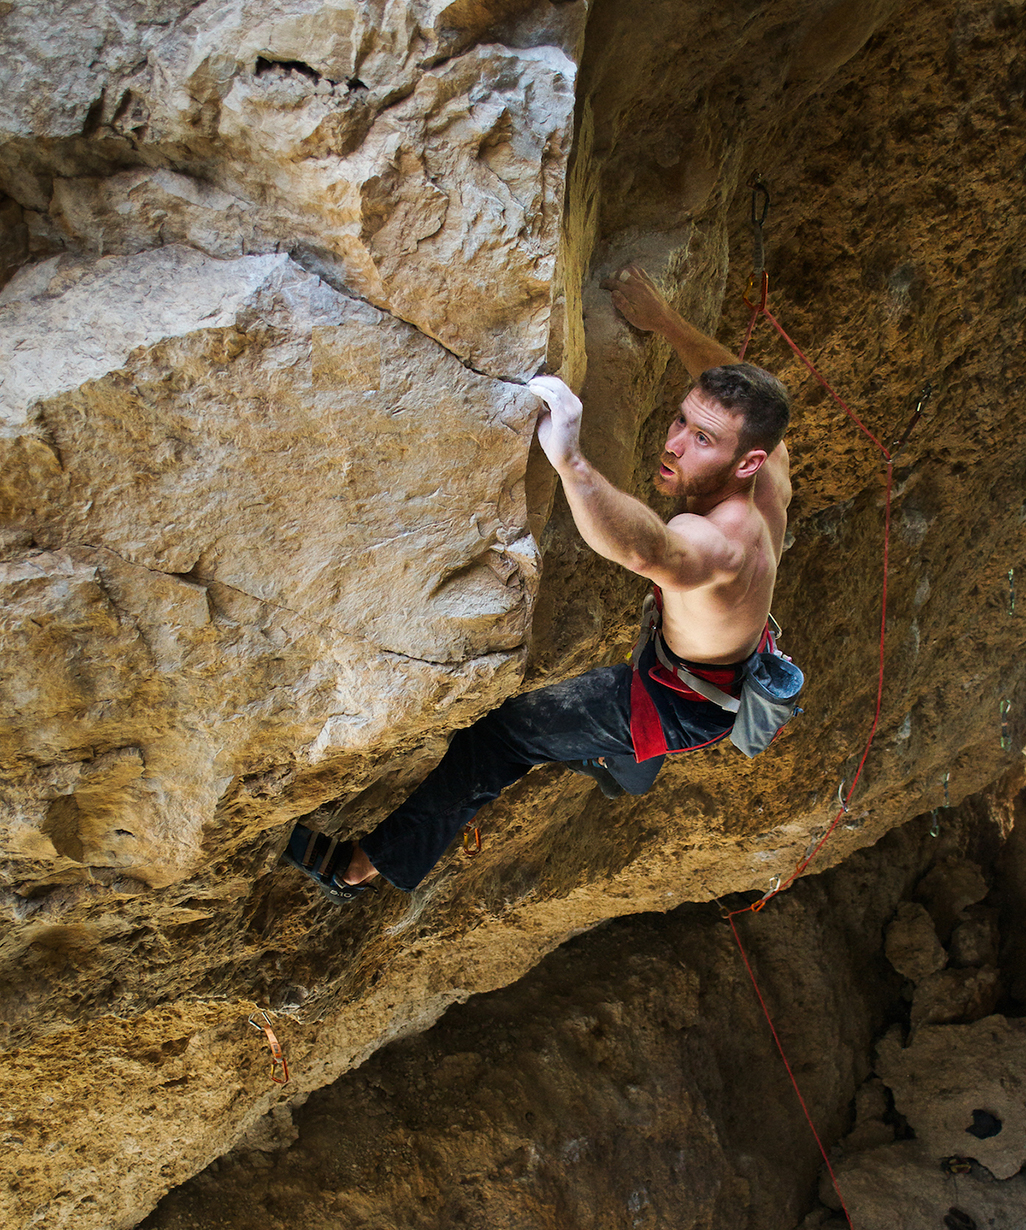 Matt Pincus of TrainingBeta on Blister's All Things Climbing Podcast